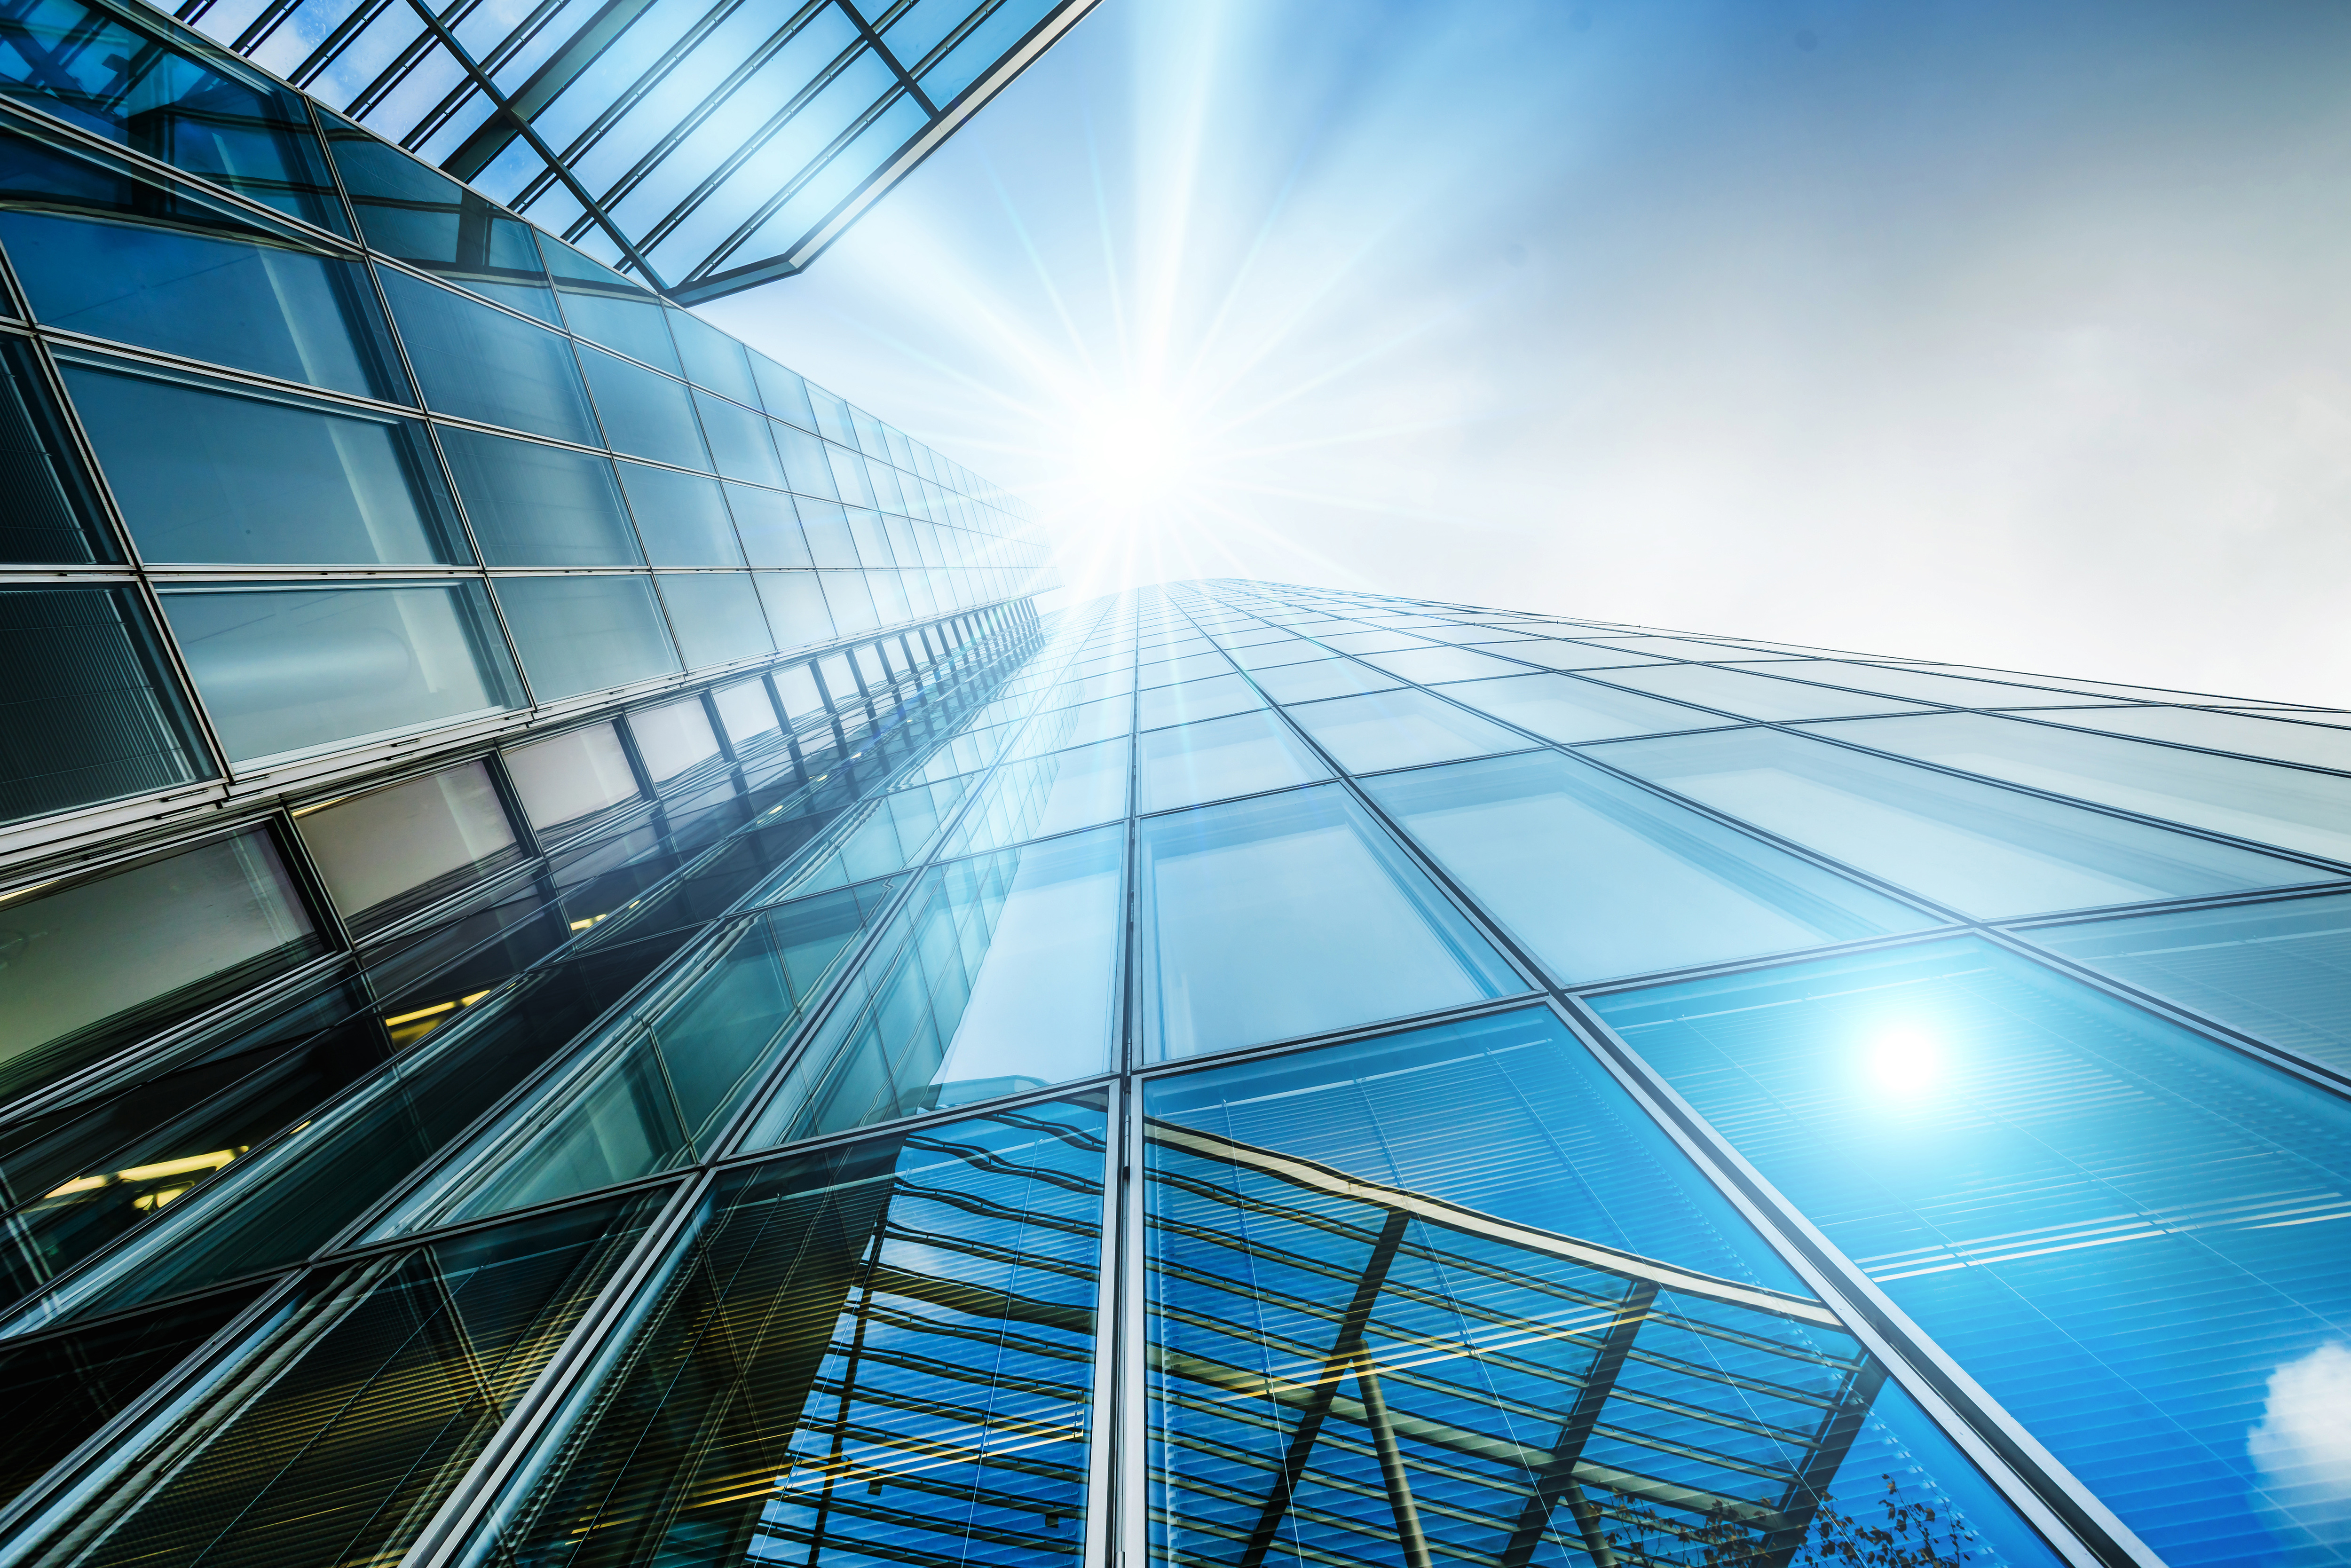 Building glass curtain wall looking up angle 55423